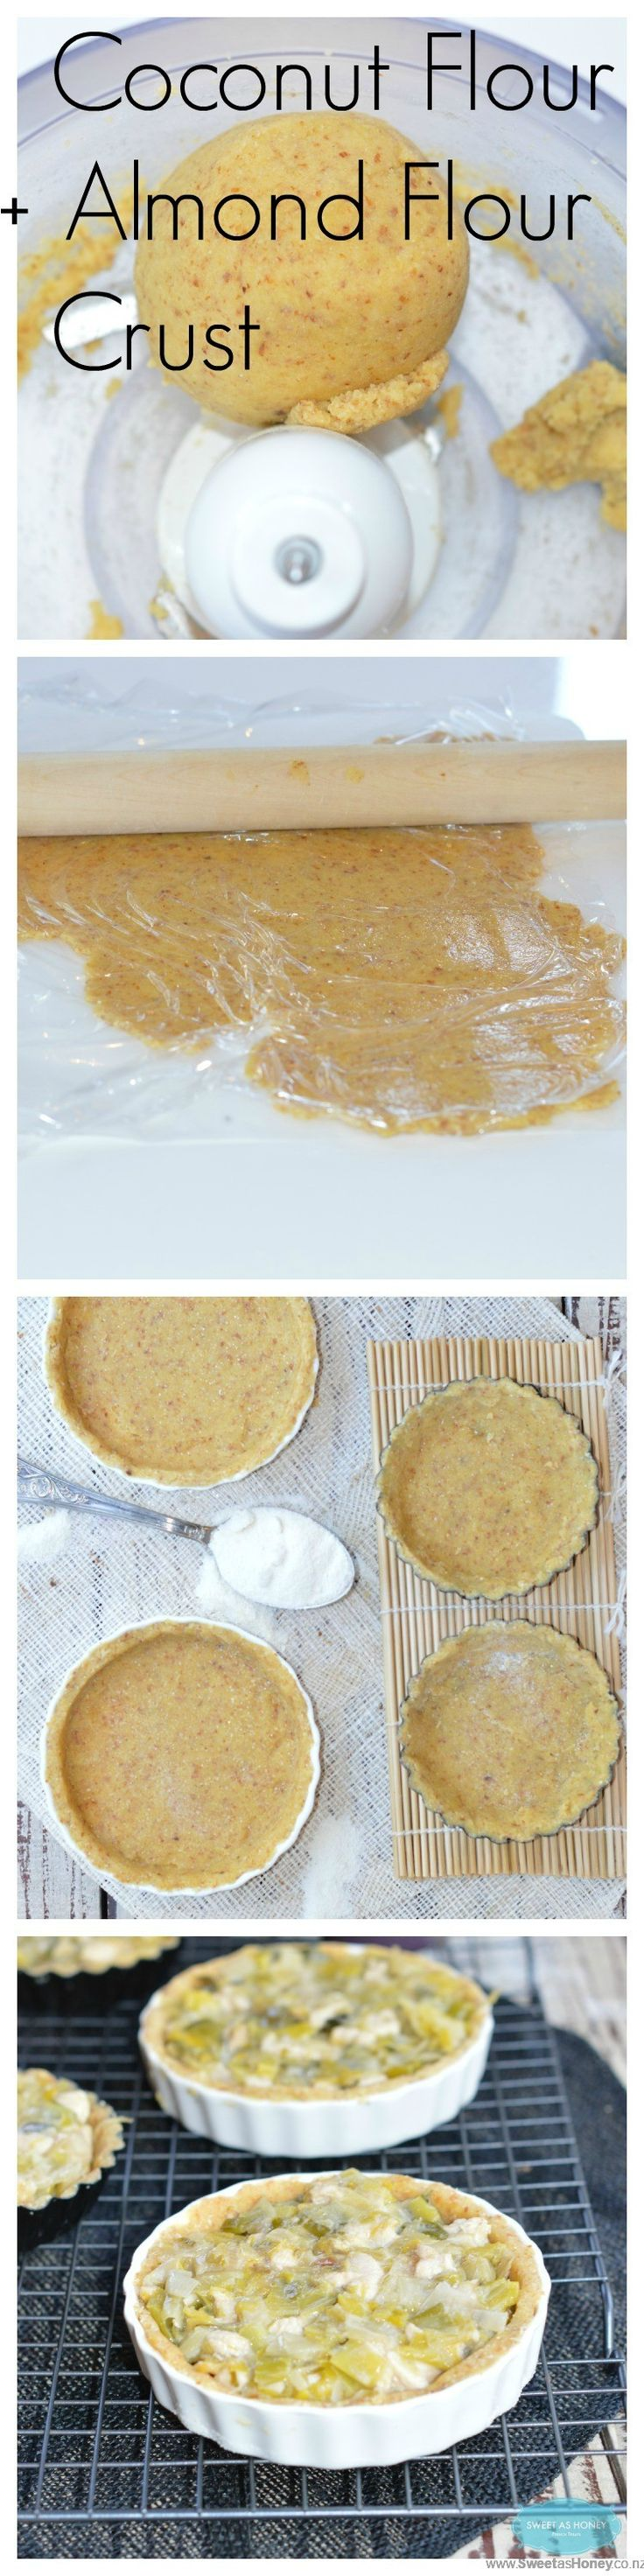 Grain Free paleo pie crust made with almond meal and coconut flour.